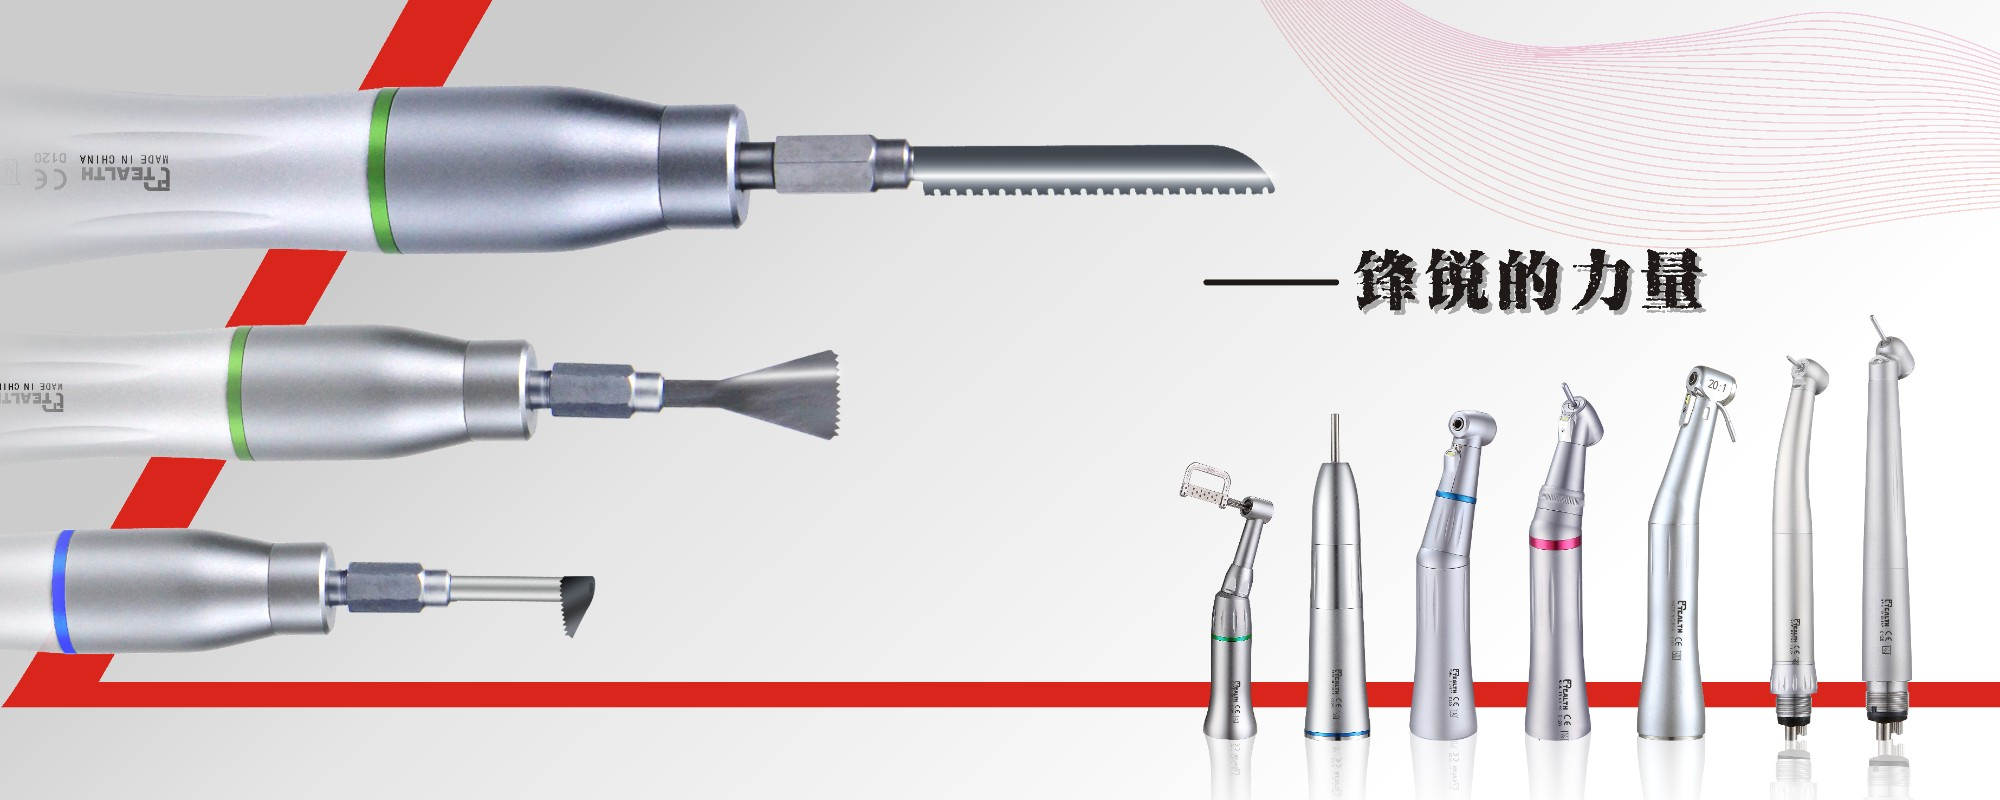 tealth saw handpieces